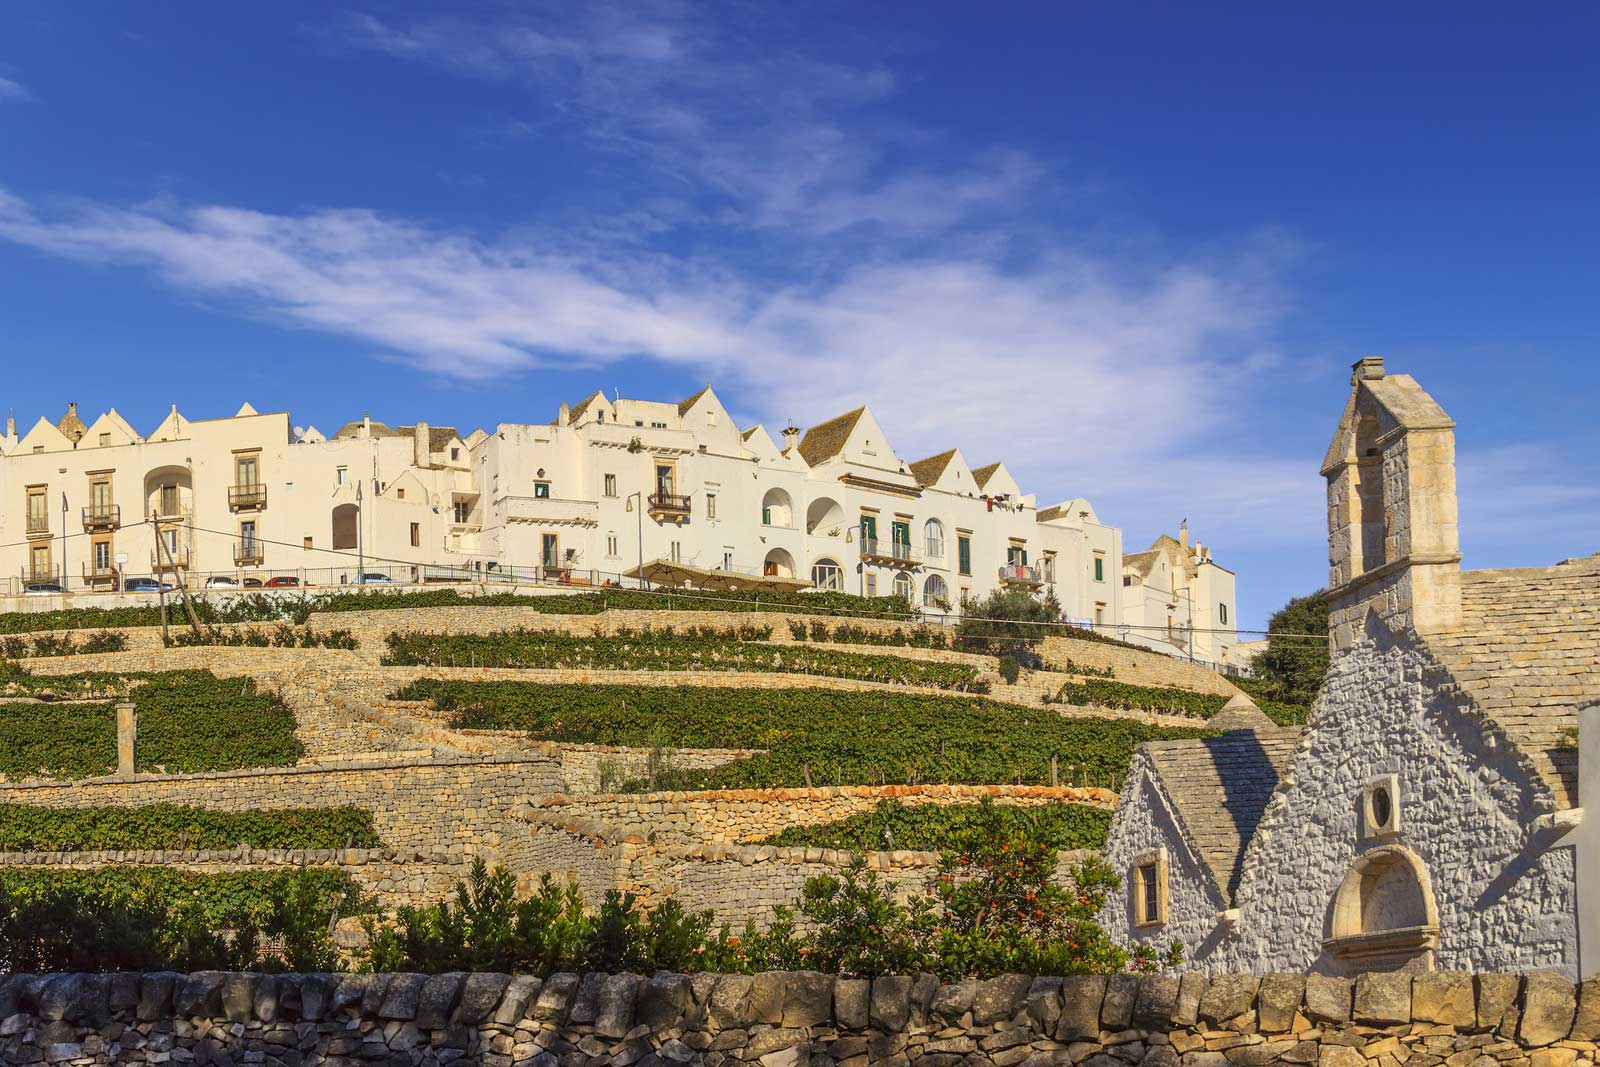 The town of Locorotondo surrounded by vineyards in the heart of Puglia.